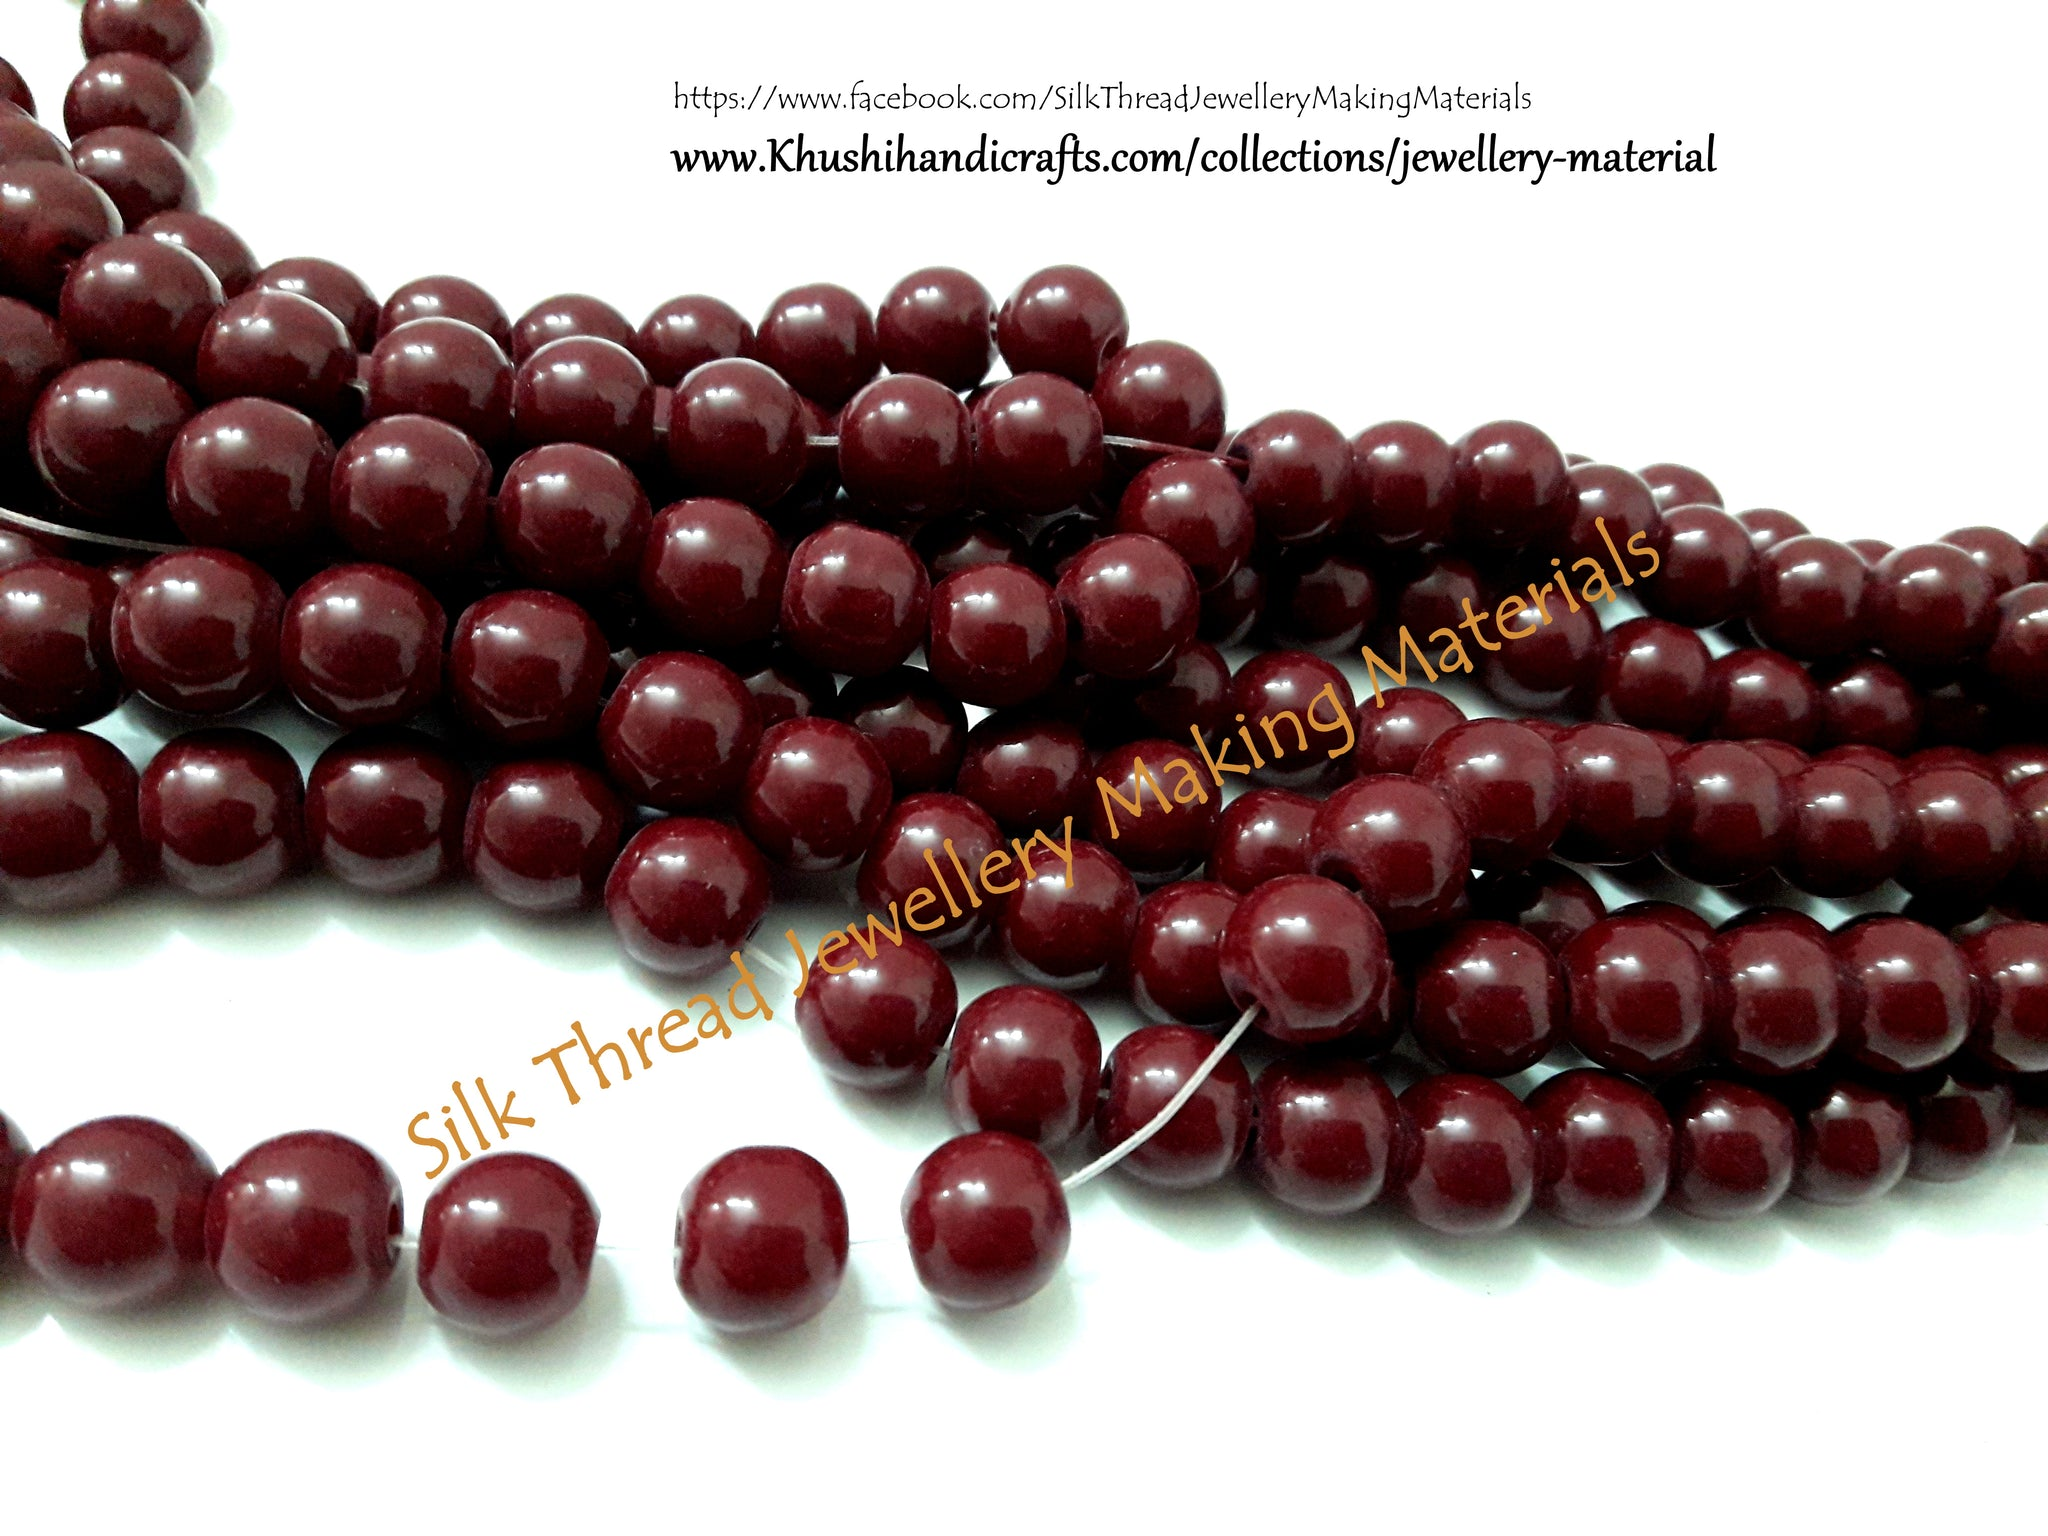 gold jewelry beading making for sale finding bulk tarnish in rose bali supplies itm beads plated spacer non barrel